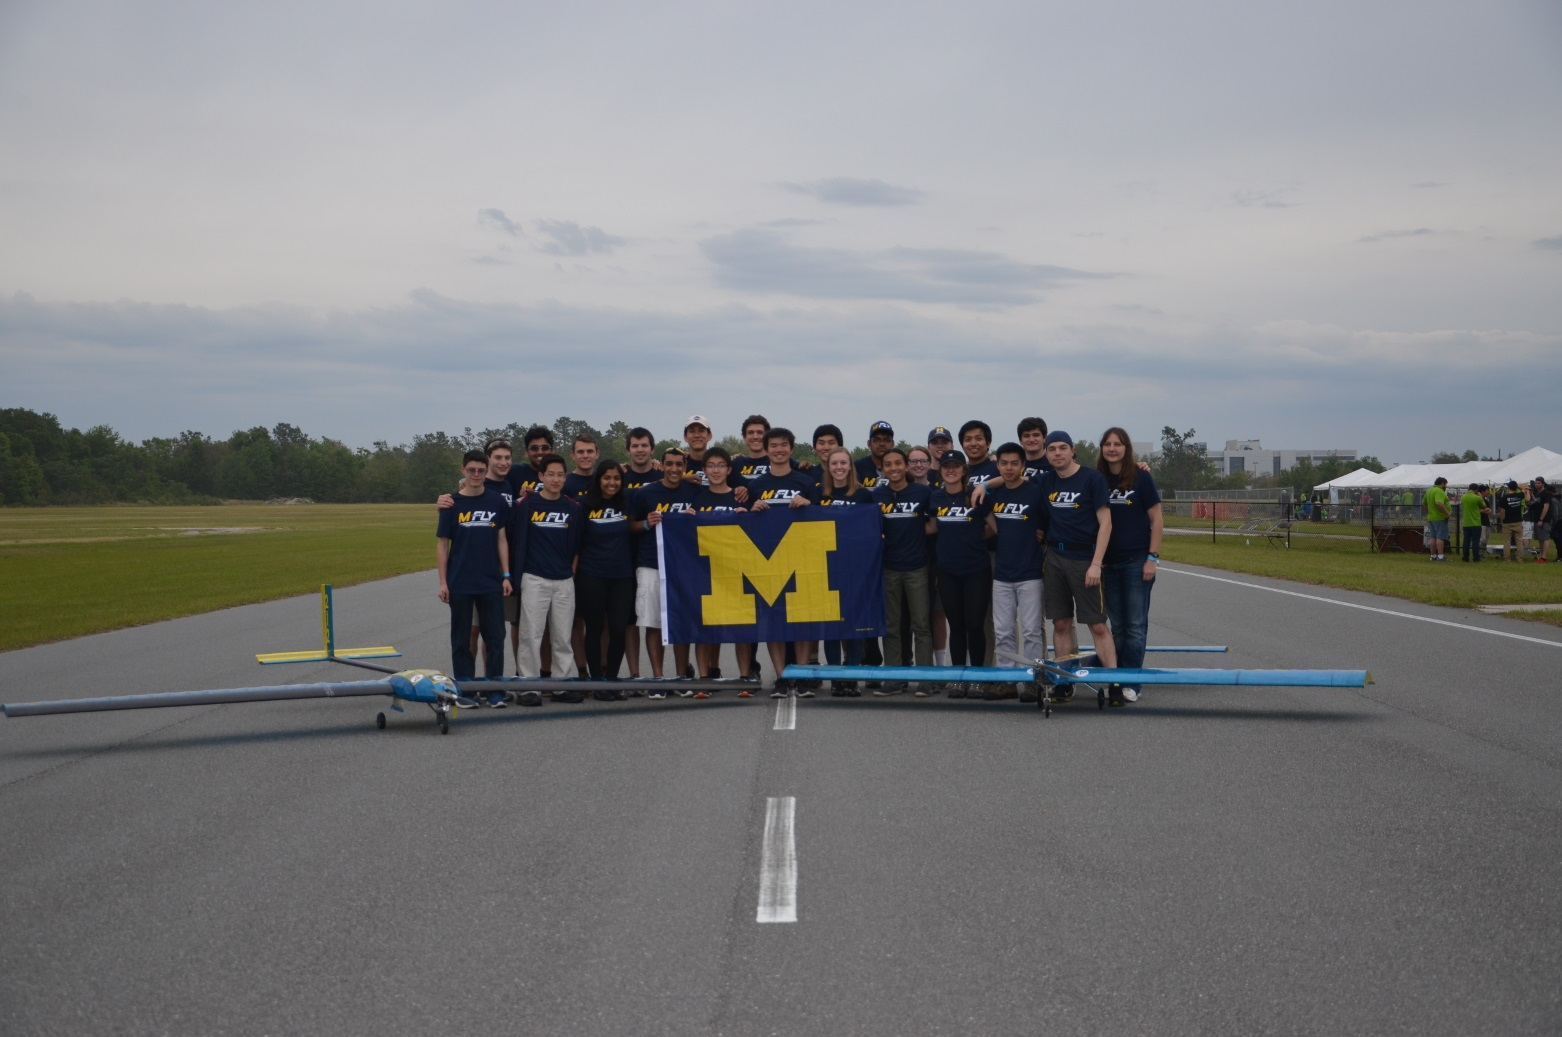 M-Fly team photo